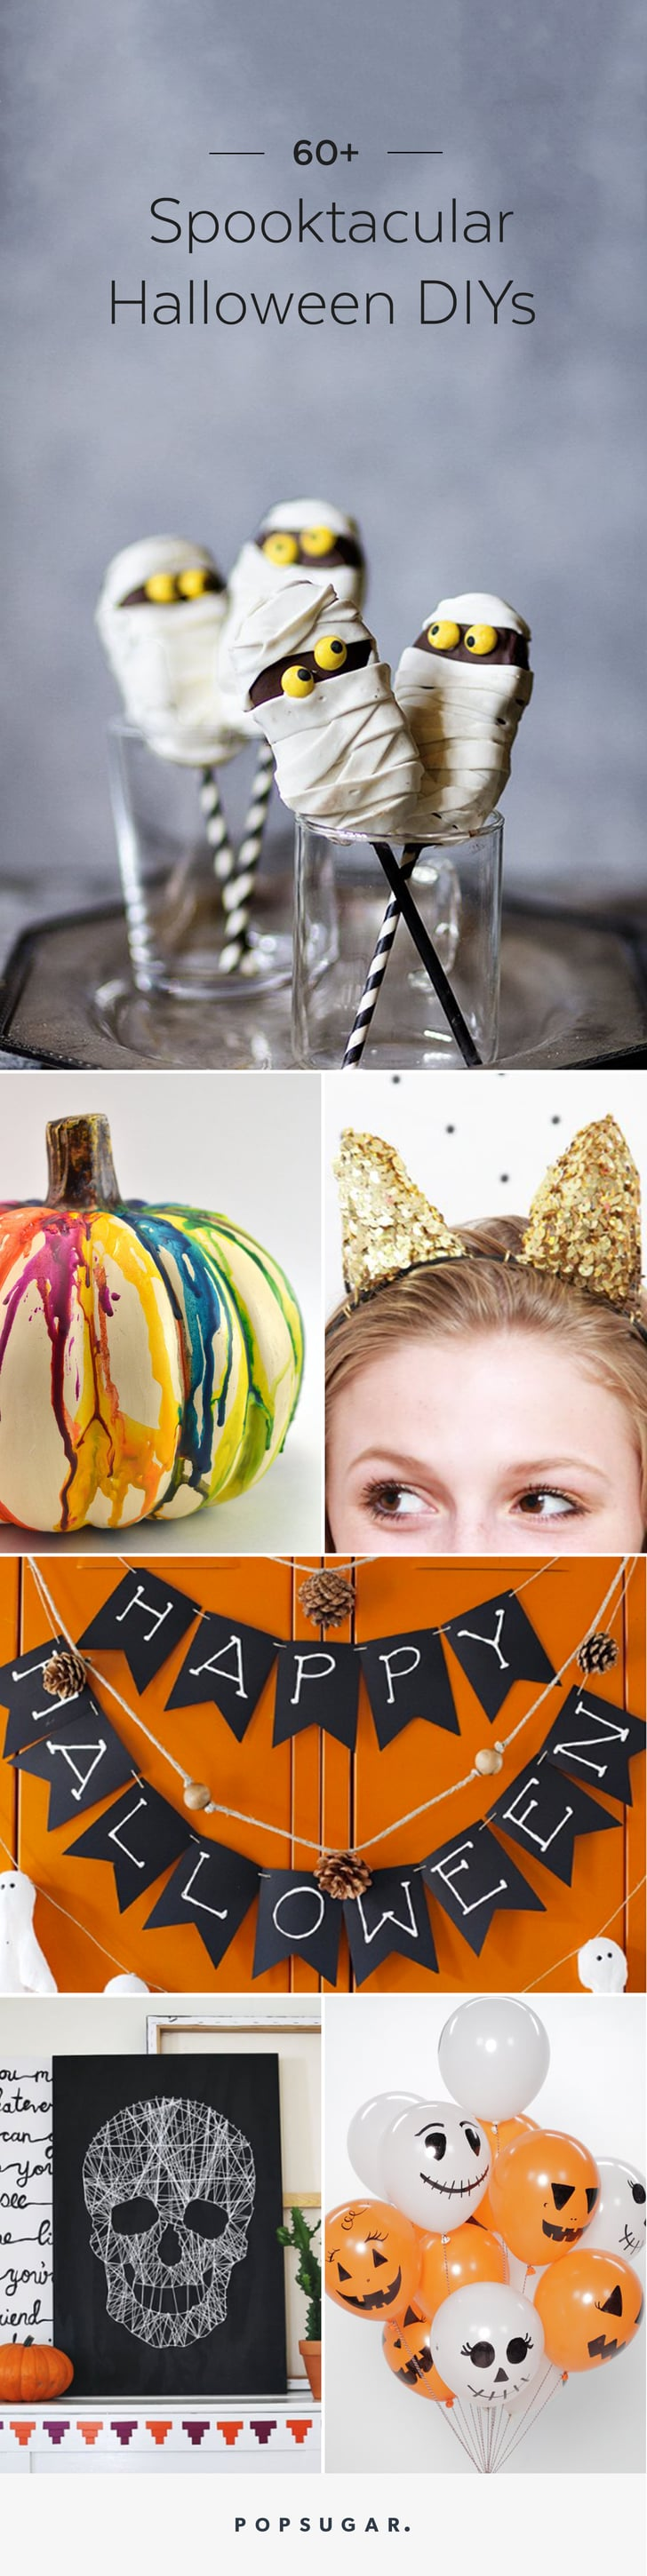 60+ of the Most Spooktacular Halloween DIYs